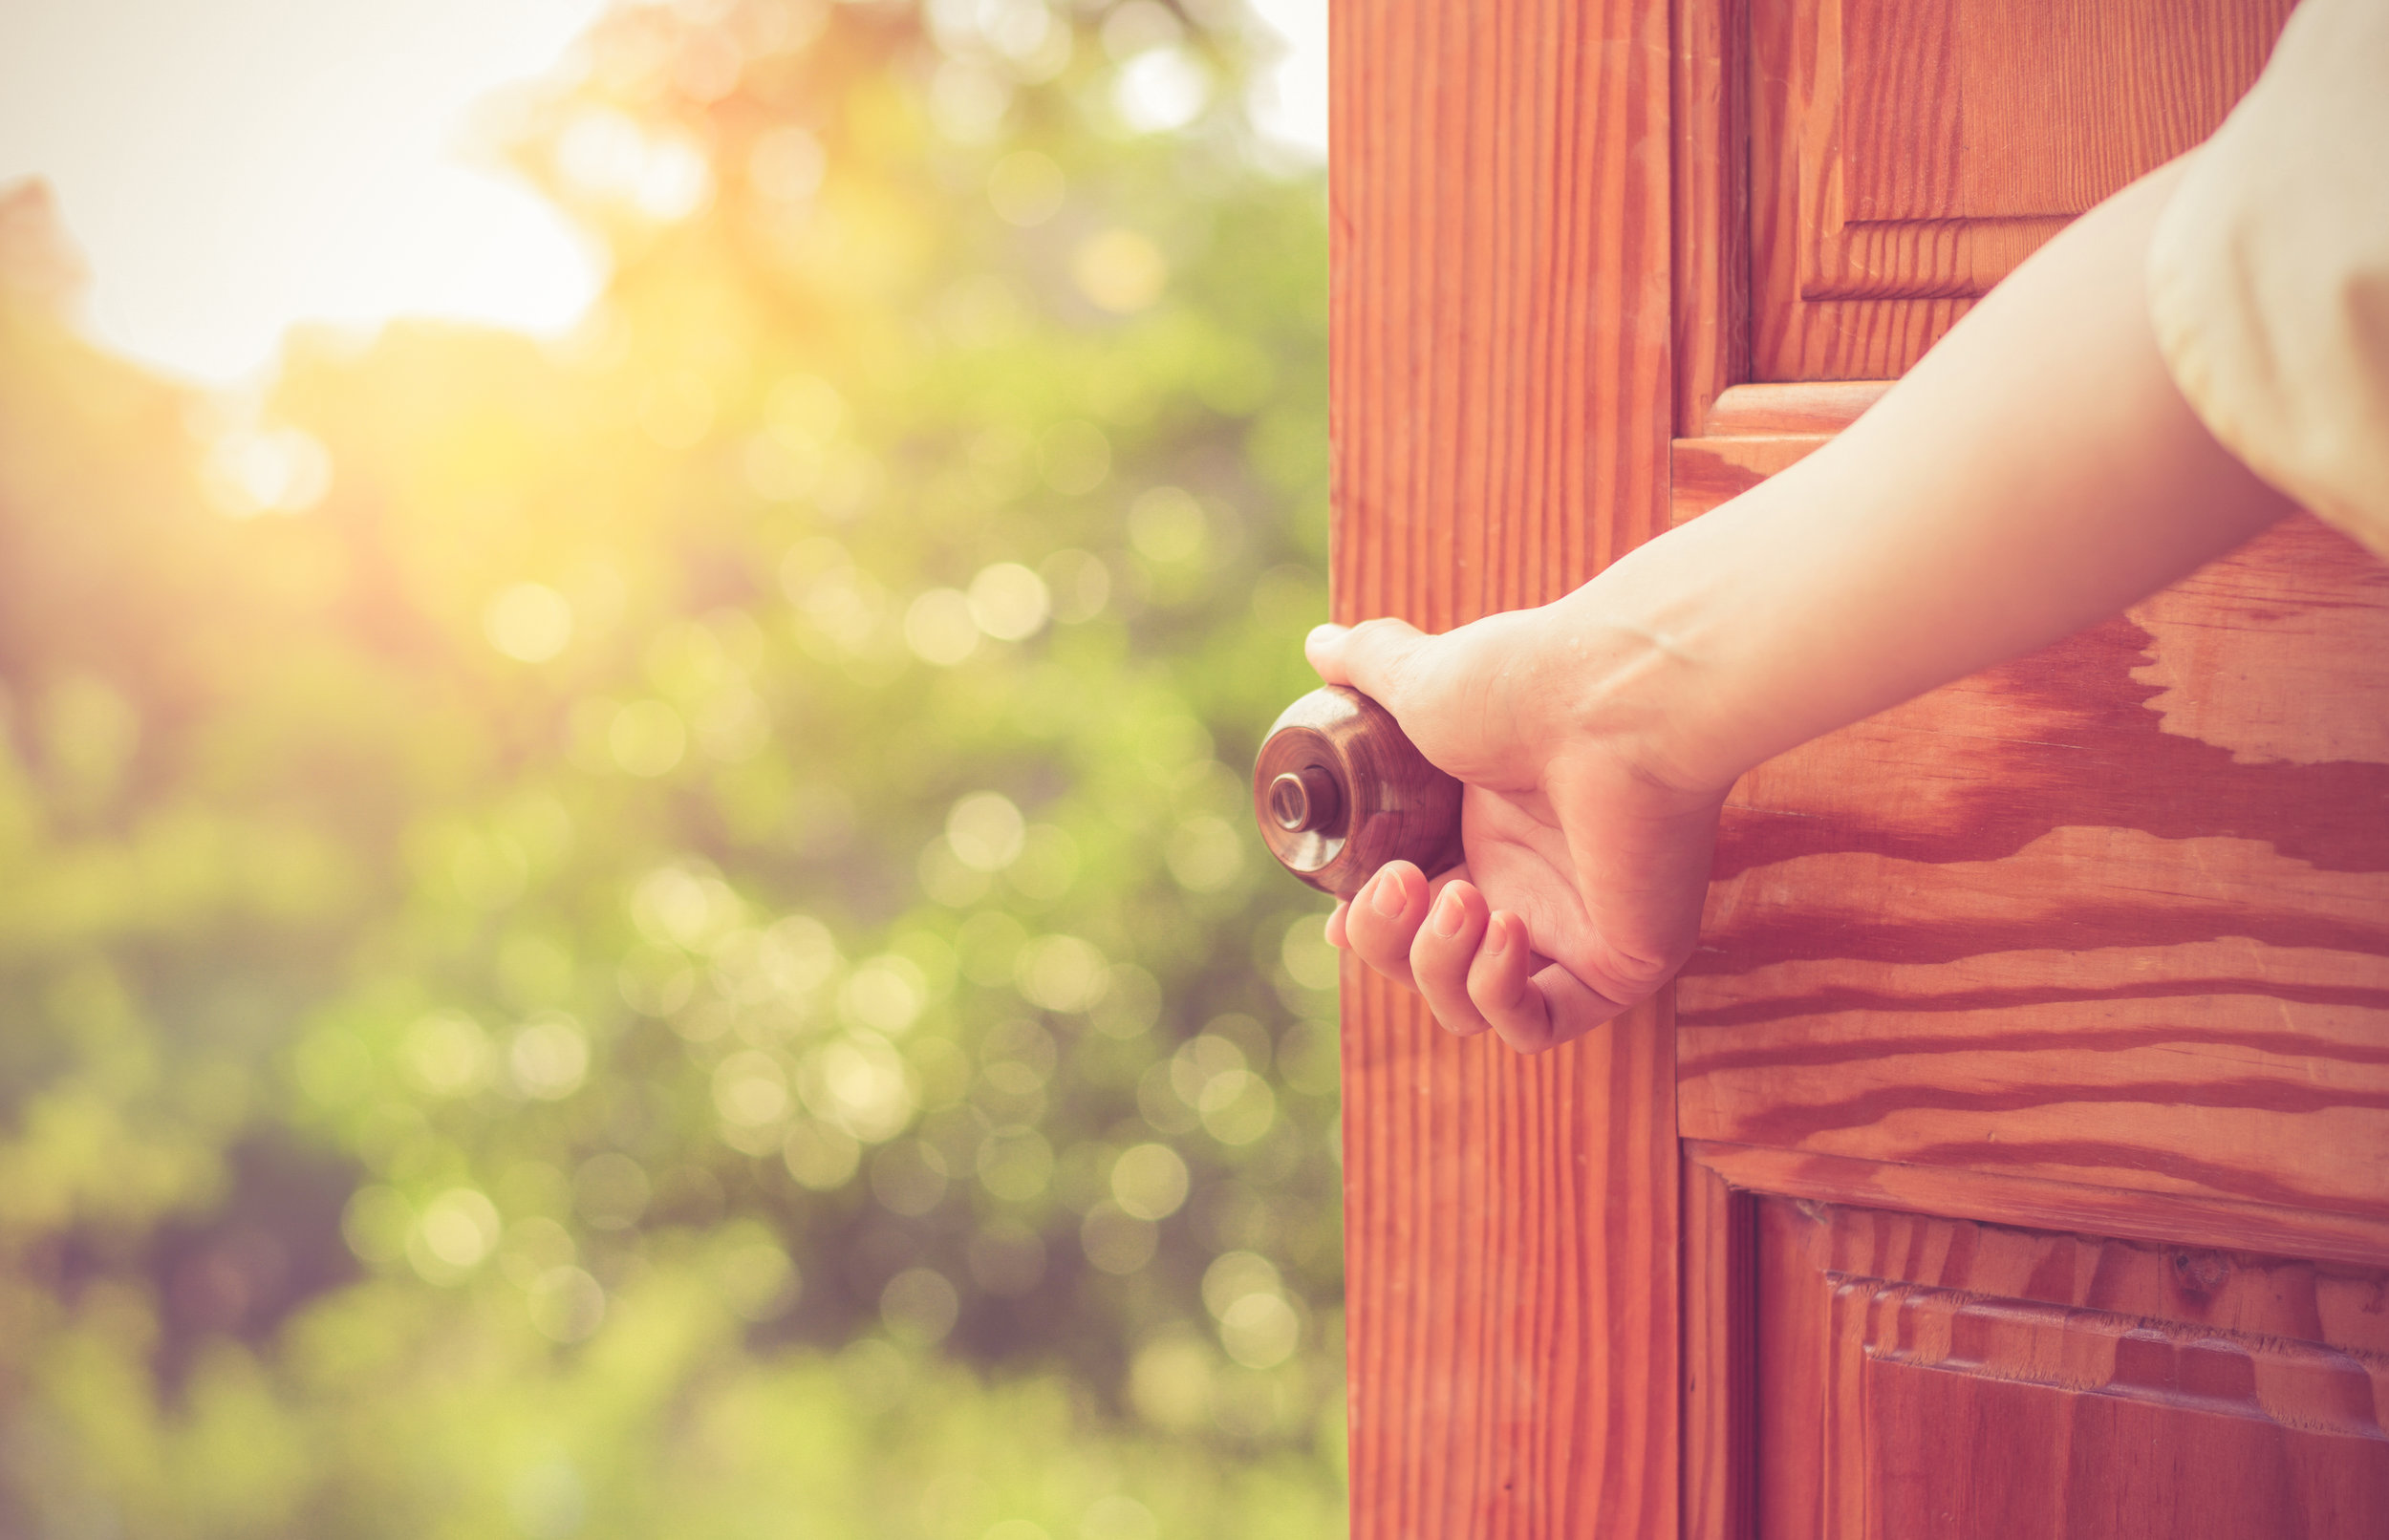 - Choose to open the door to your fullest potential.